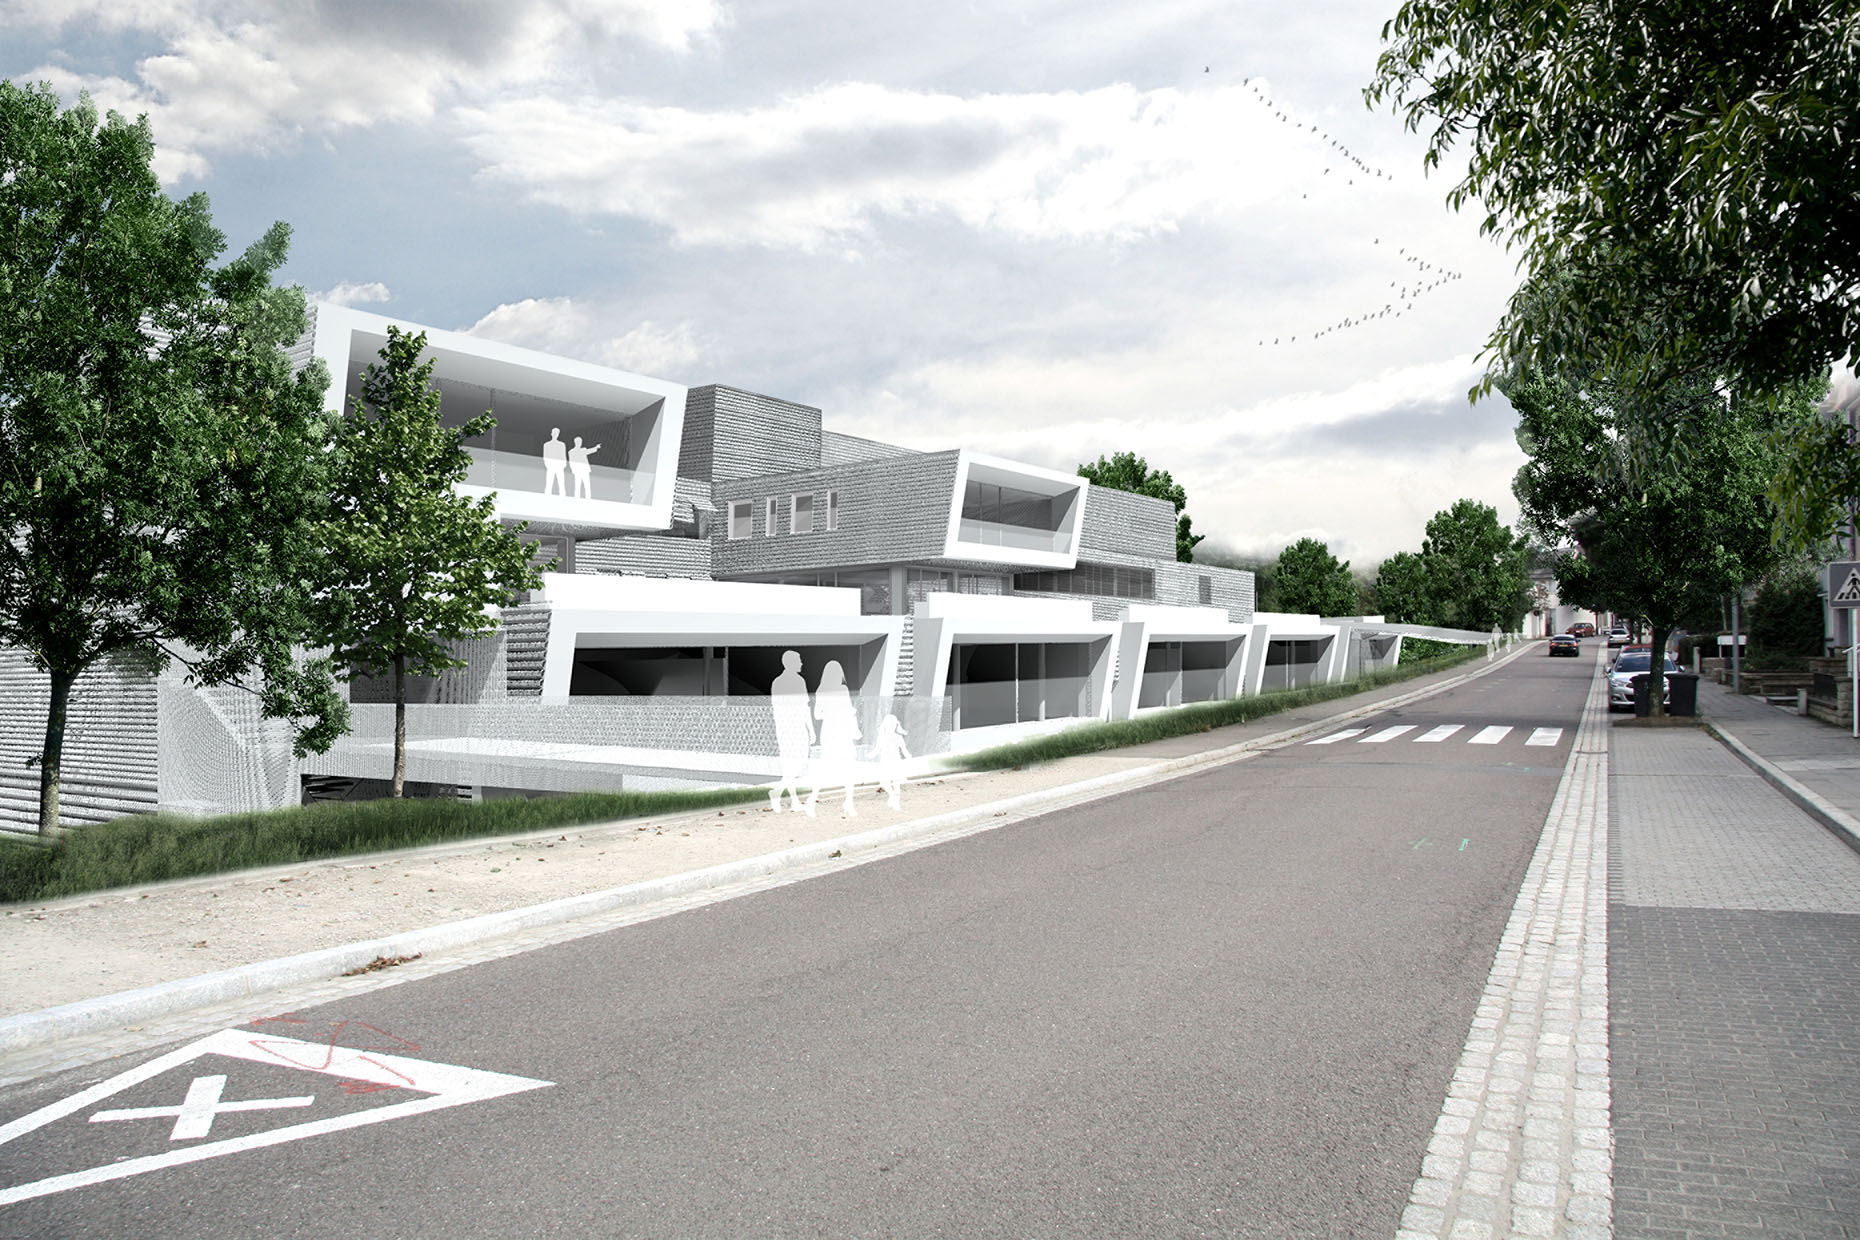 09-Construction du batiment maintenance et infrastructure SNCFL a Luxembourg